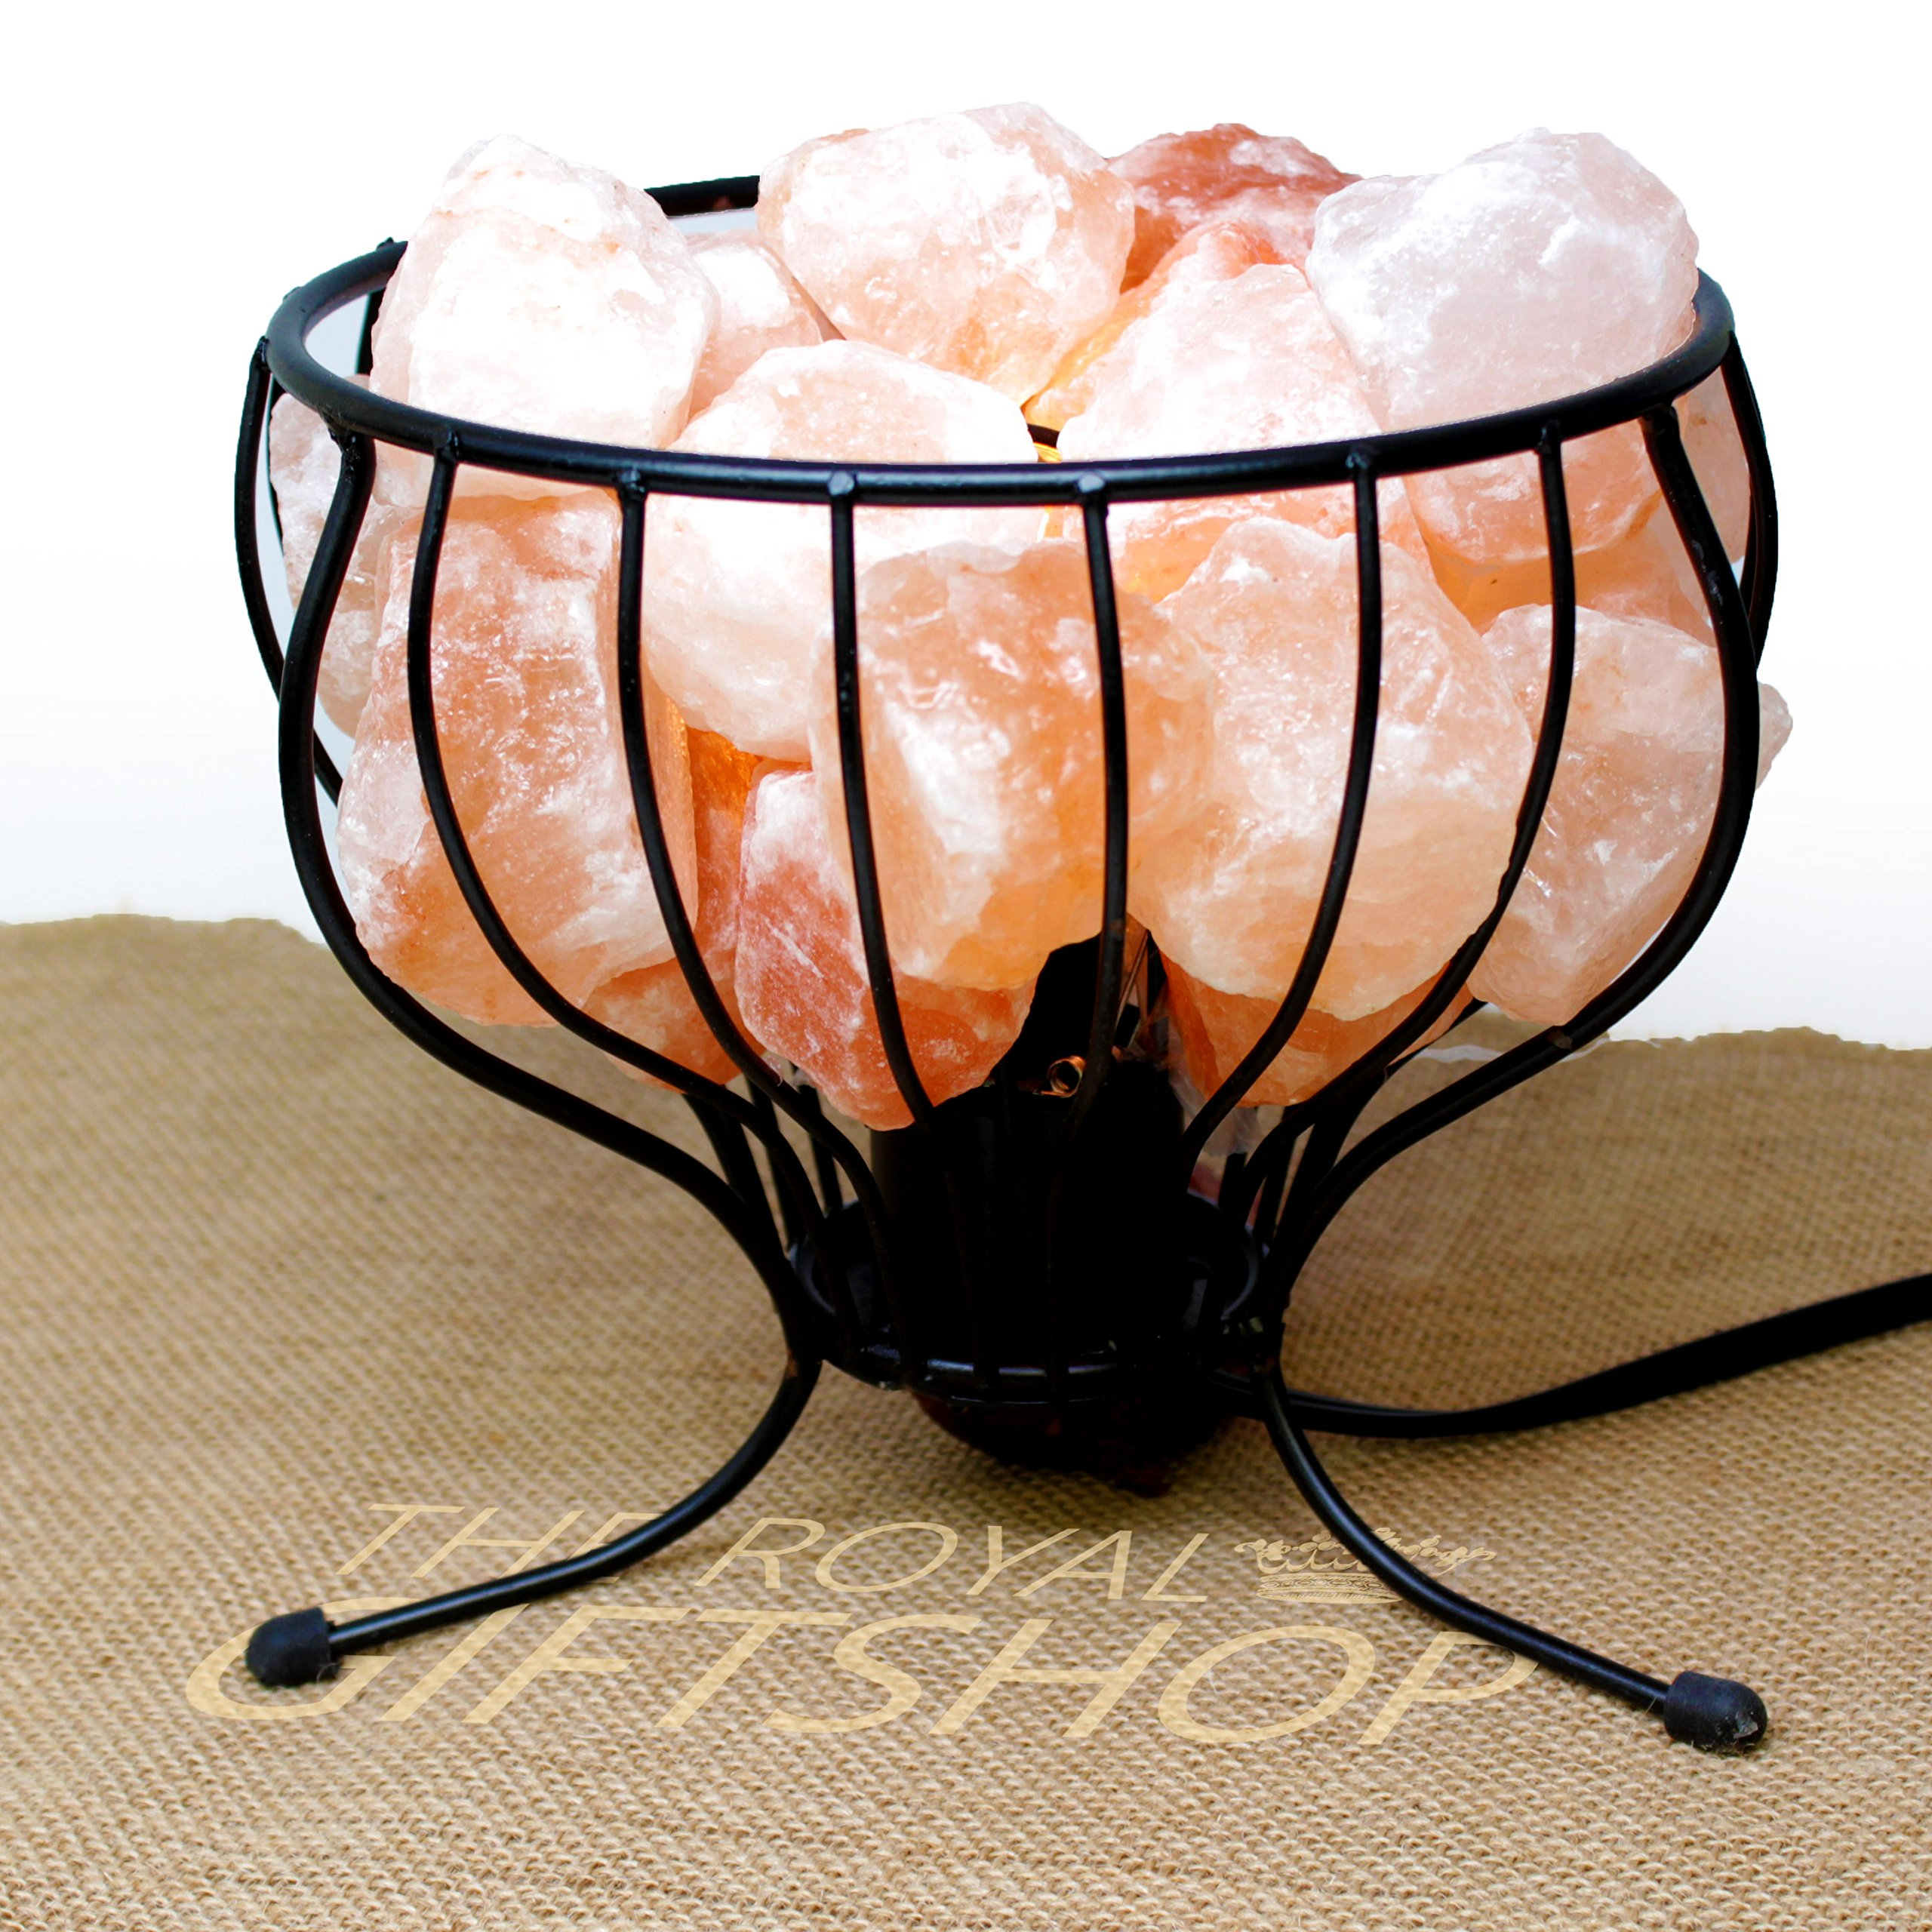 Clearance Sale: Himalayan Salt Lamp - Iron Basket with UL- approved Dimmer Switch and 15-Watt Light Bulb